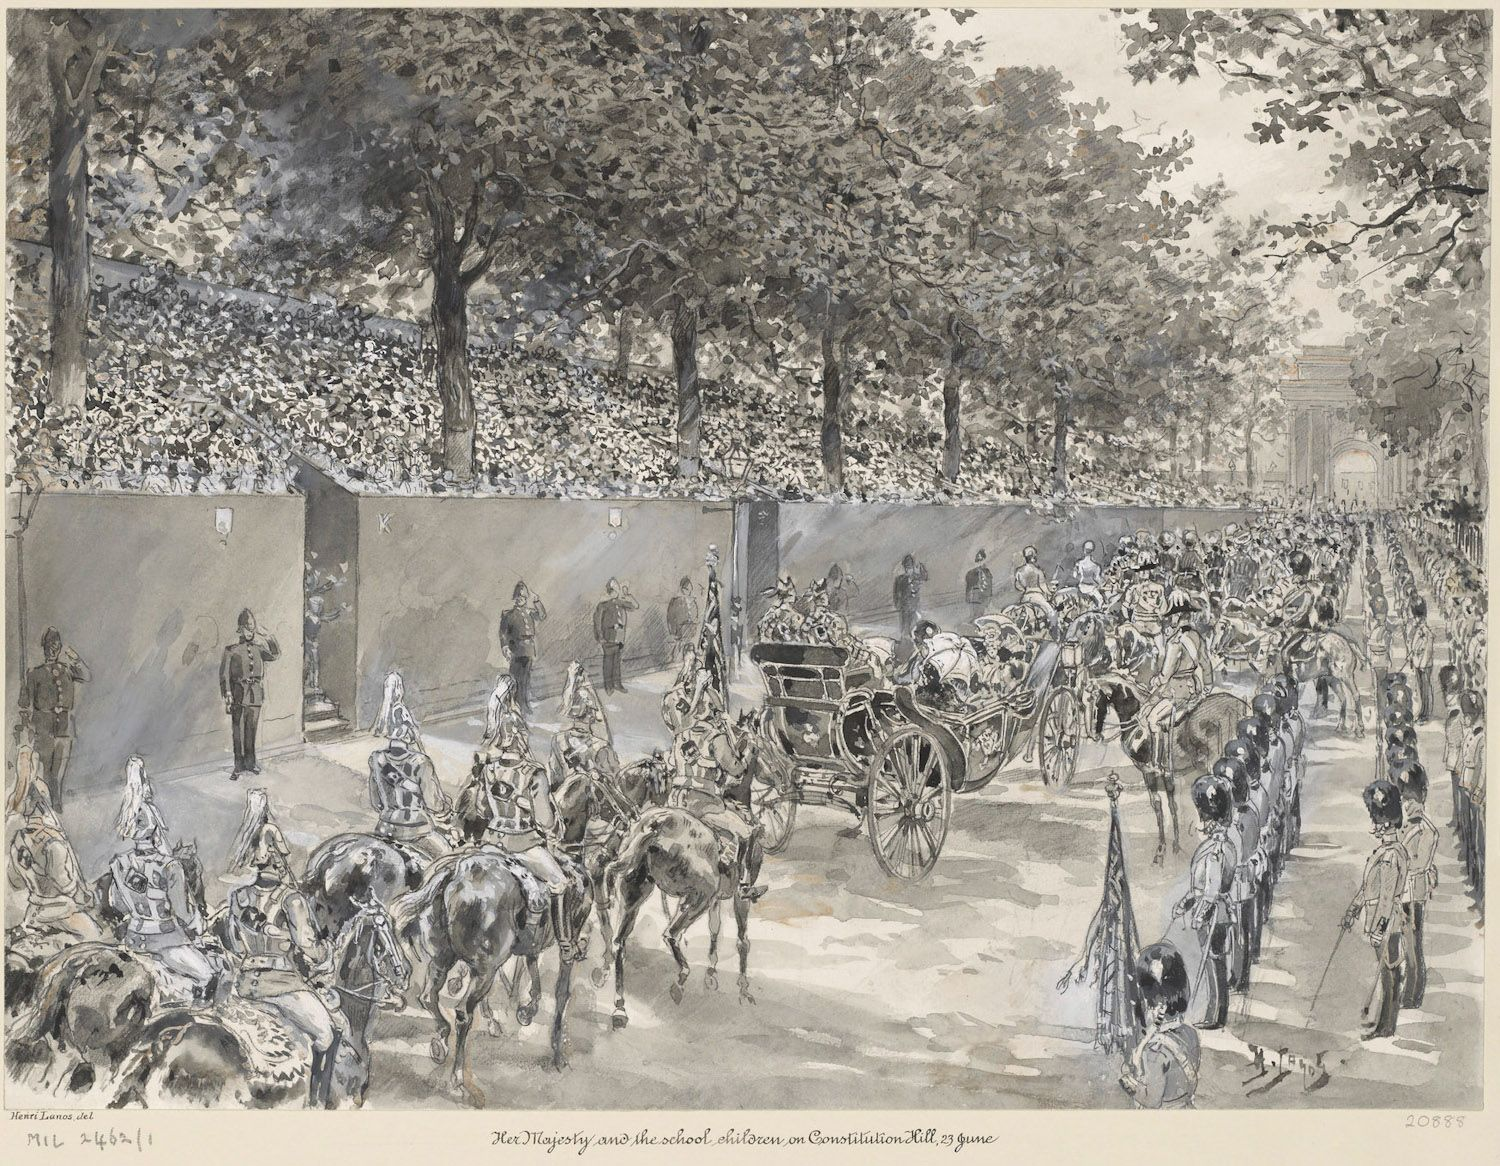 On her departure from Buckingham Palace for Windsor on 23 June 1897, Queen Victoria was greeted by 10,000 children from various elementary schools of London, who lined Constitution Hill by Hyde Park and sang three verses of 'God Save The Queen'.  Supplied by Royal Collection Trust  © HM Queen Elizabeth II 2012  RCIN 920888